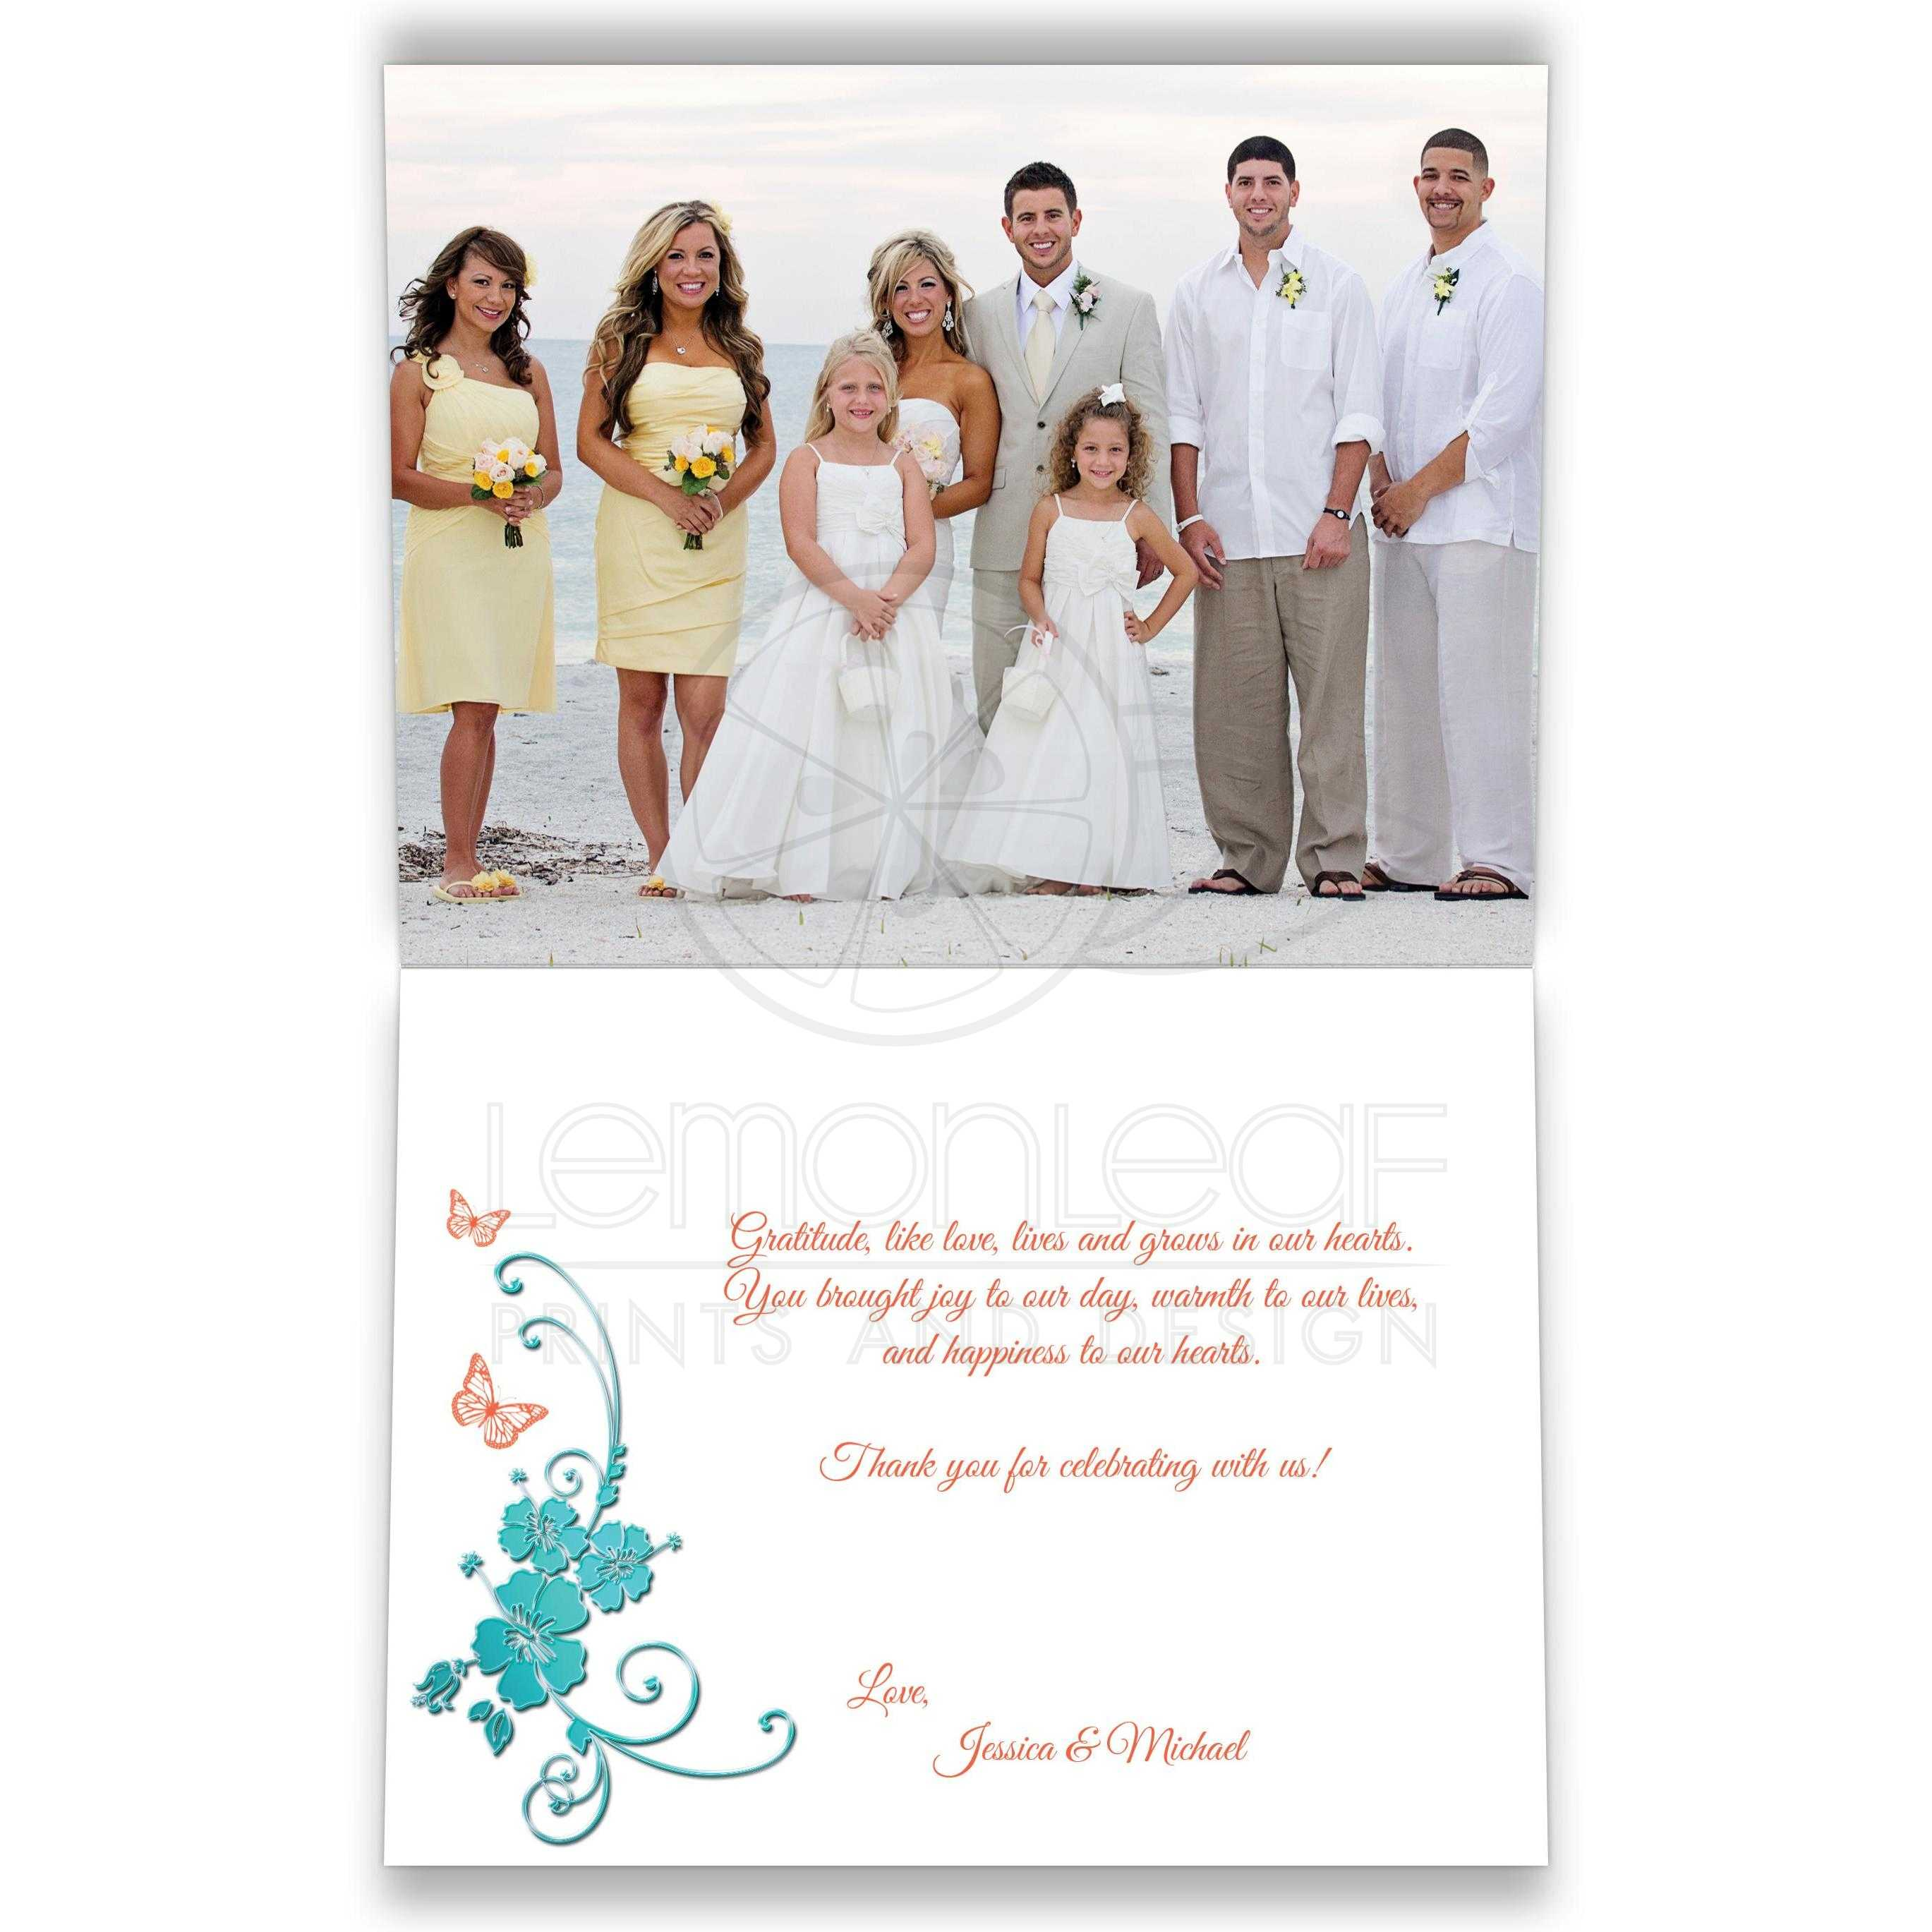 Custom Wedding Photo Thank You Card | Turquoise, Coral | Tropical Beach